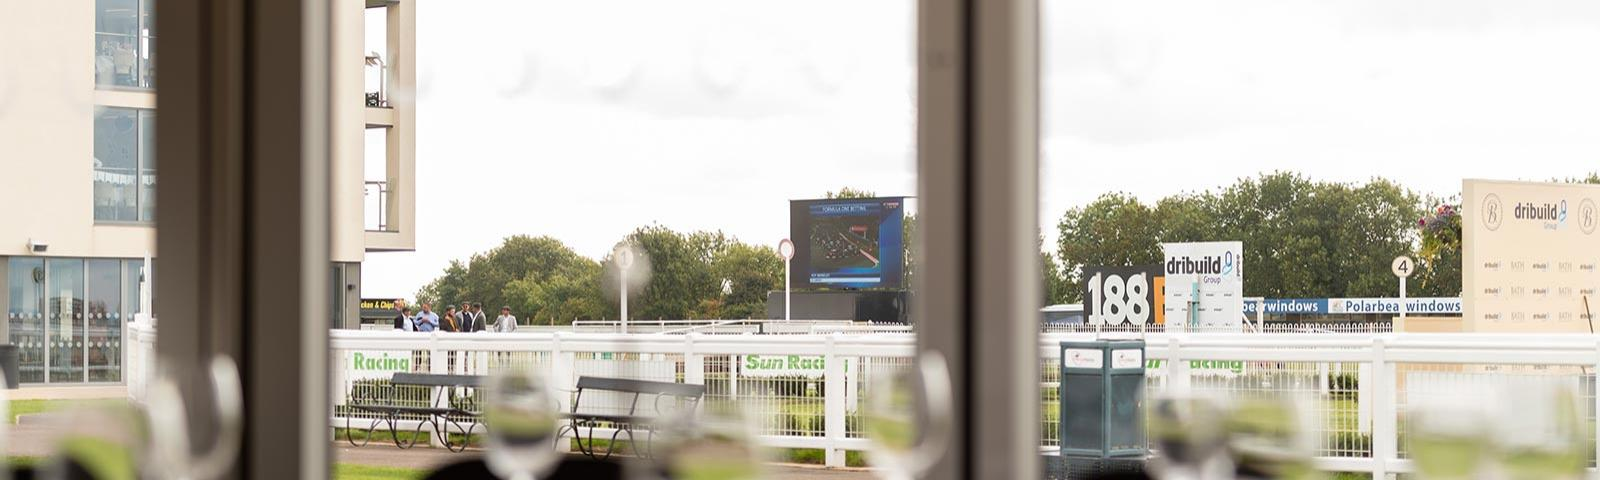 A view out into the parade ring from the Paddock Pavilion at Bath Racecourse.